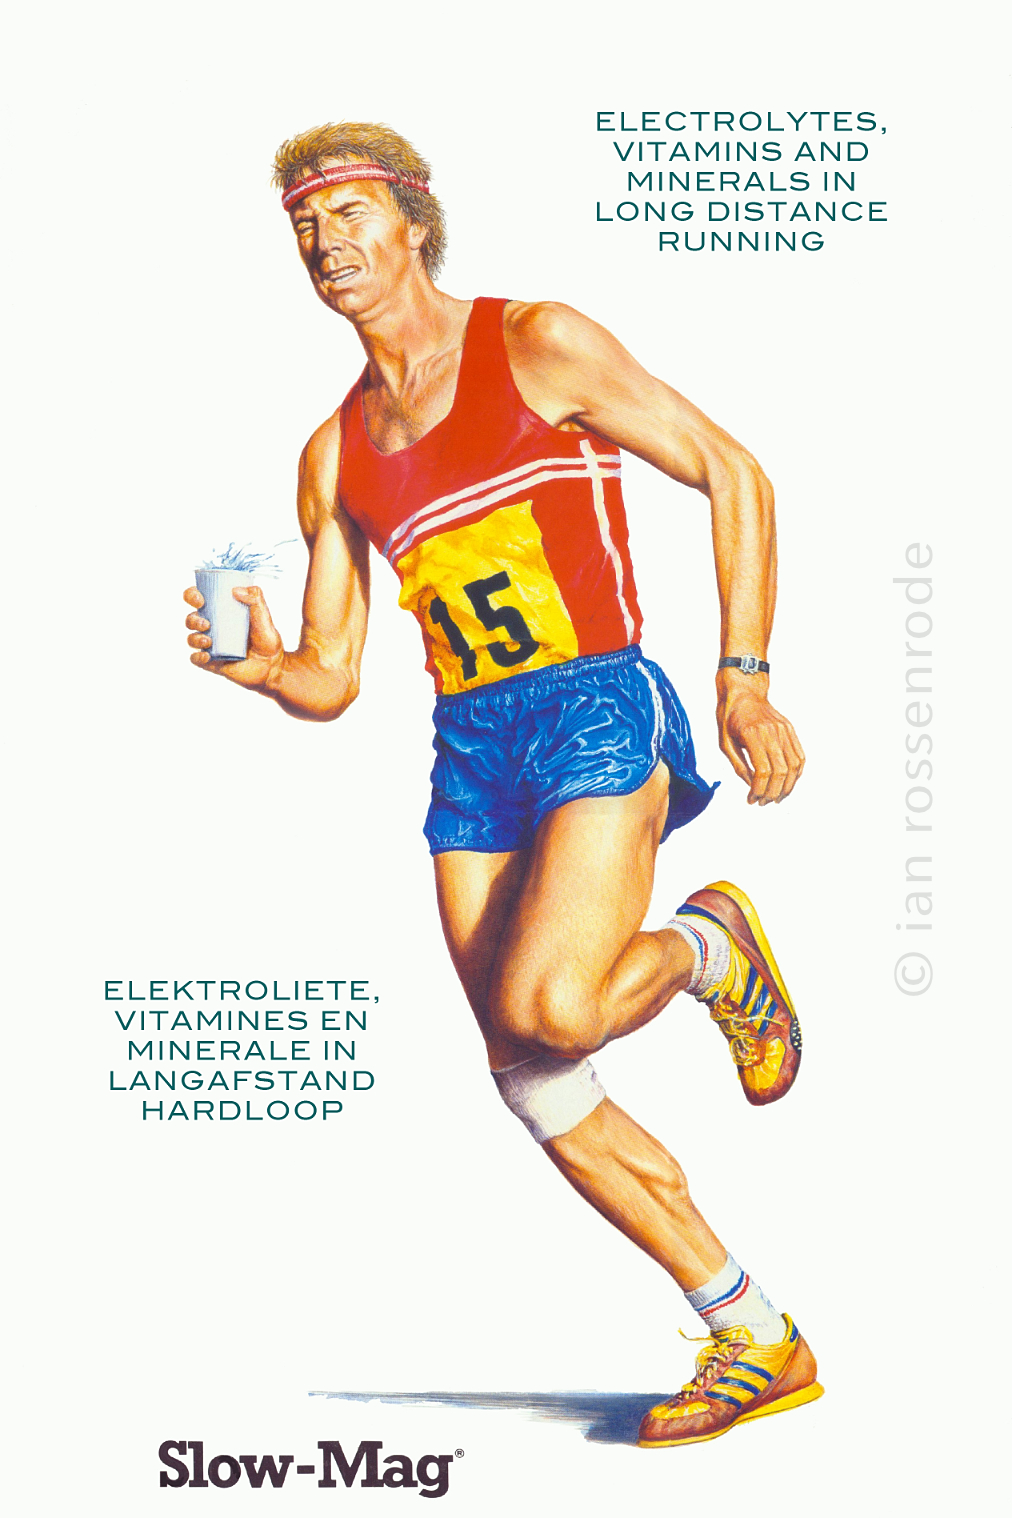 'Slo-Mag' runner illustration